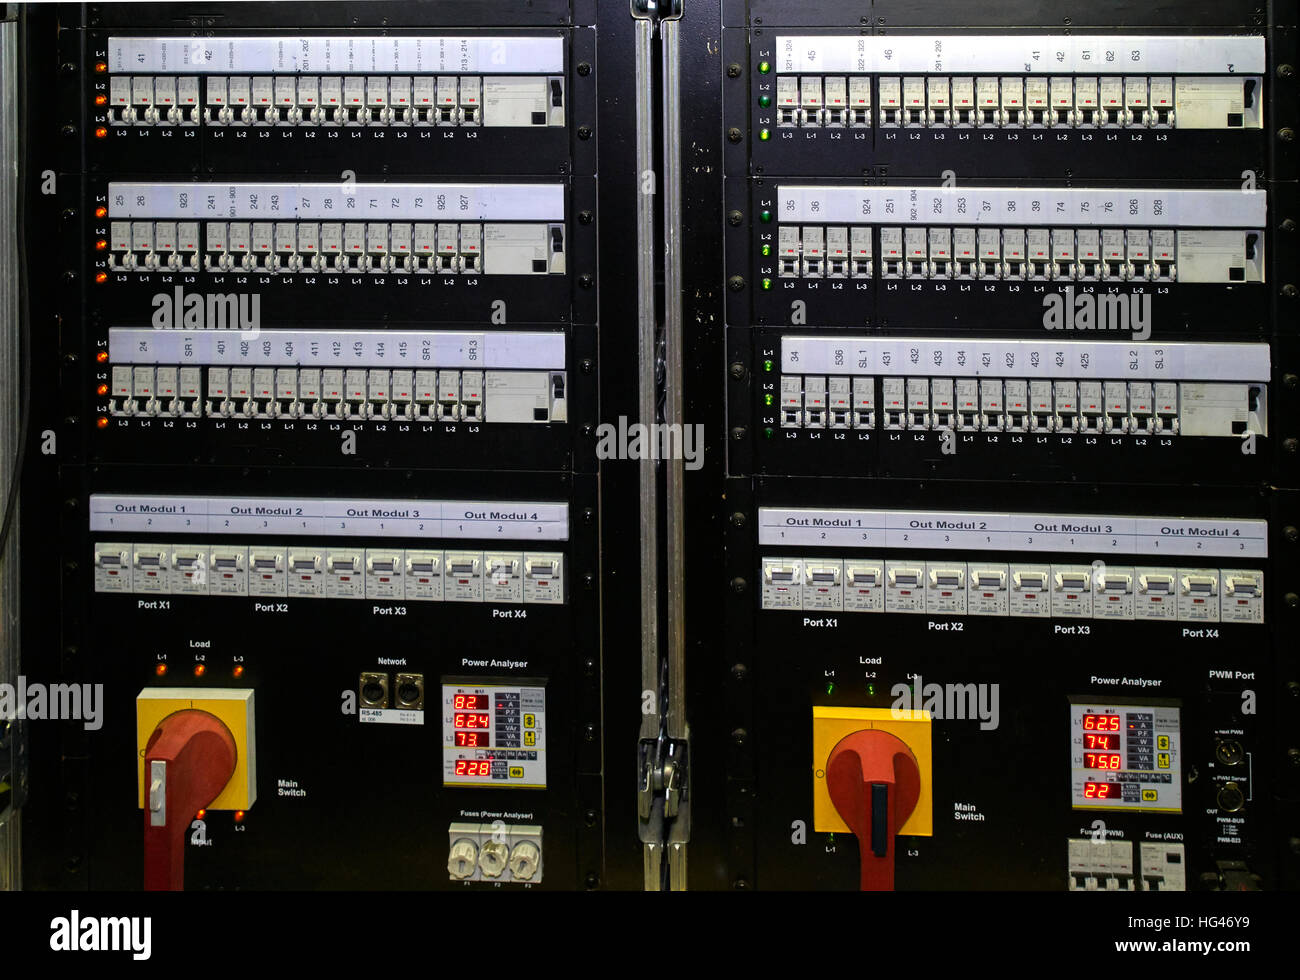 fuse box electric power stock photos & fuse box electric power stock fused switch box fuse box with switch and lights stock image